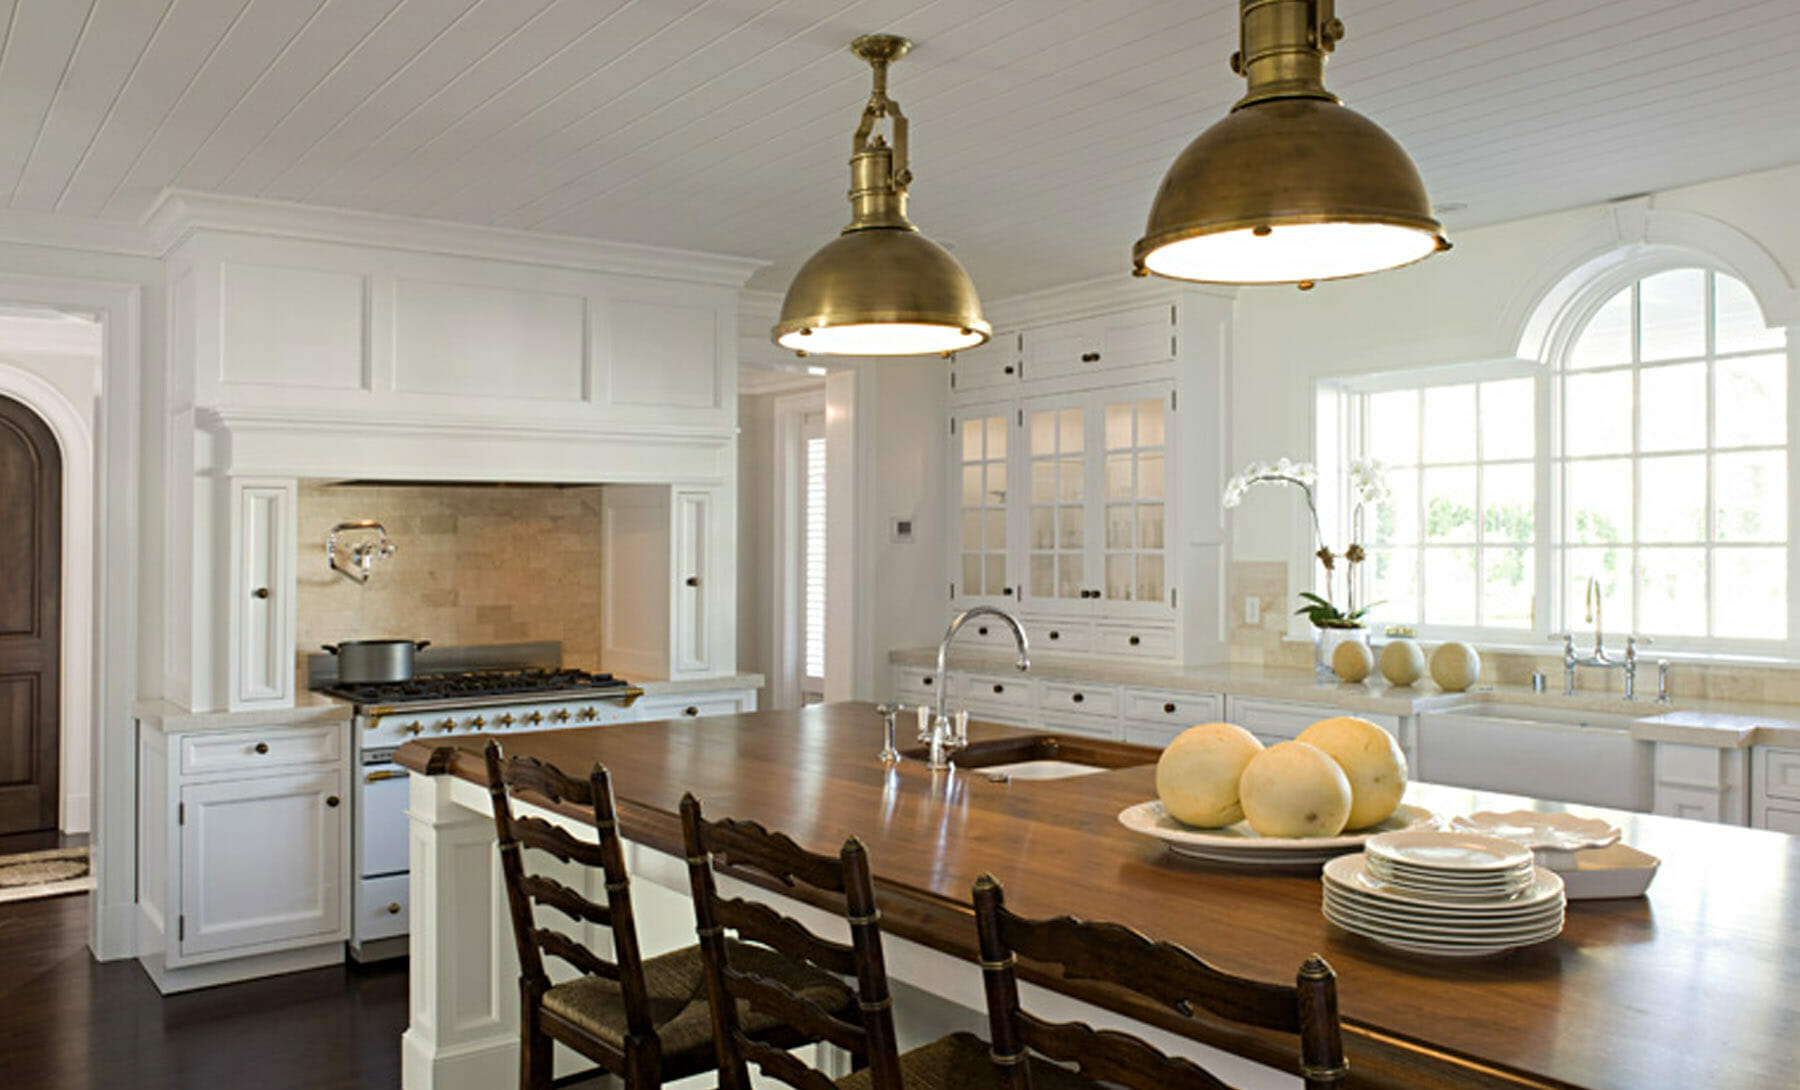 Redesigned kitchen with breakfast bar by Gibson Magerfield Edenali, located in Charlottesville, VA